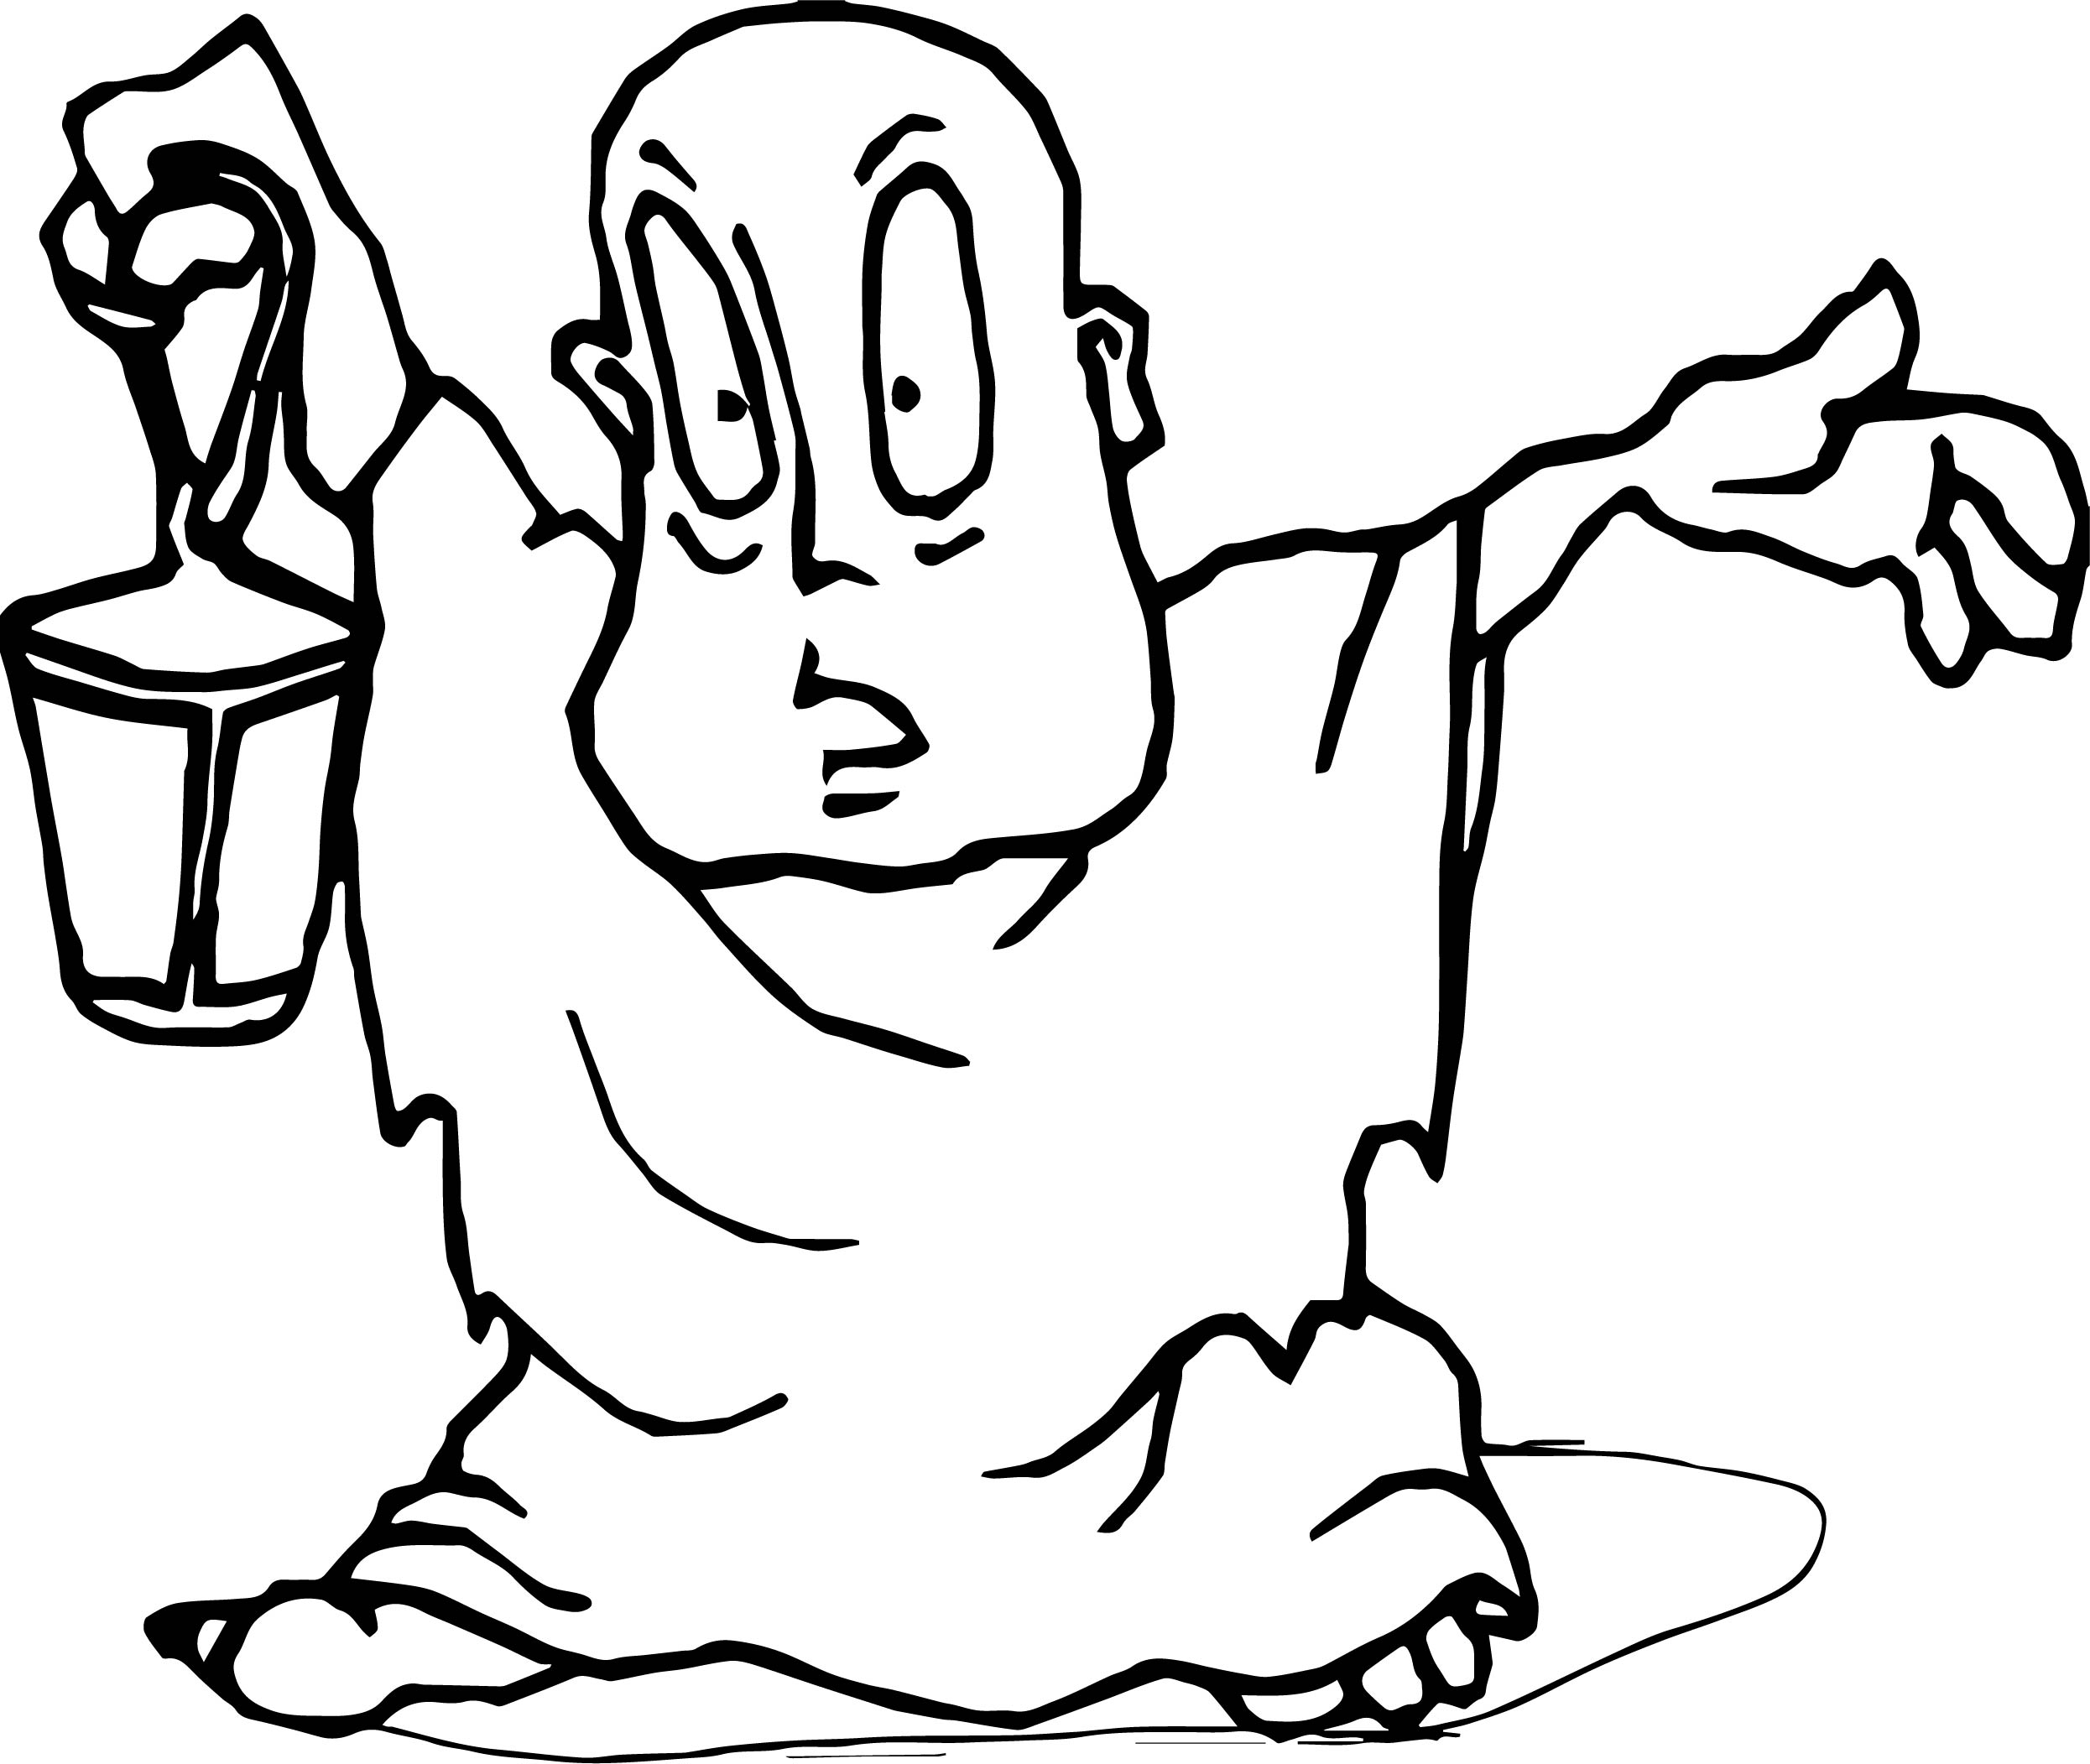 Man Bring A Lantern Scary Halloween Coloring Page